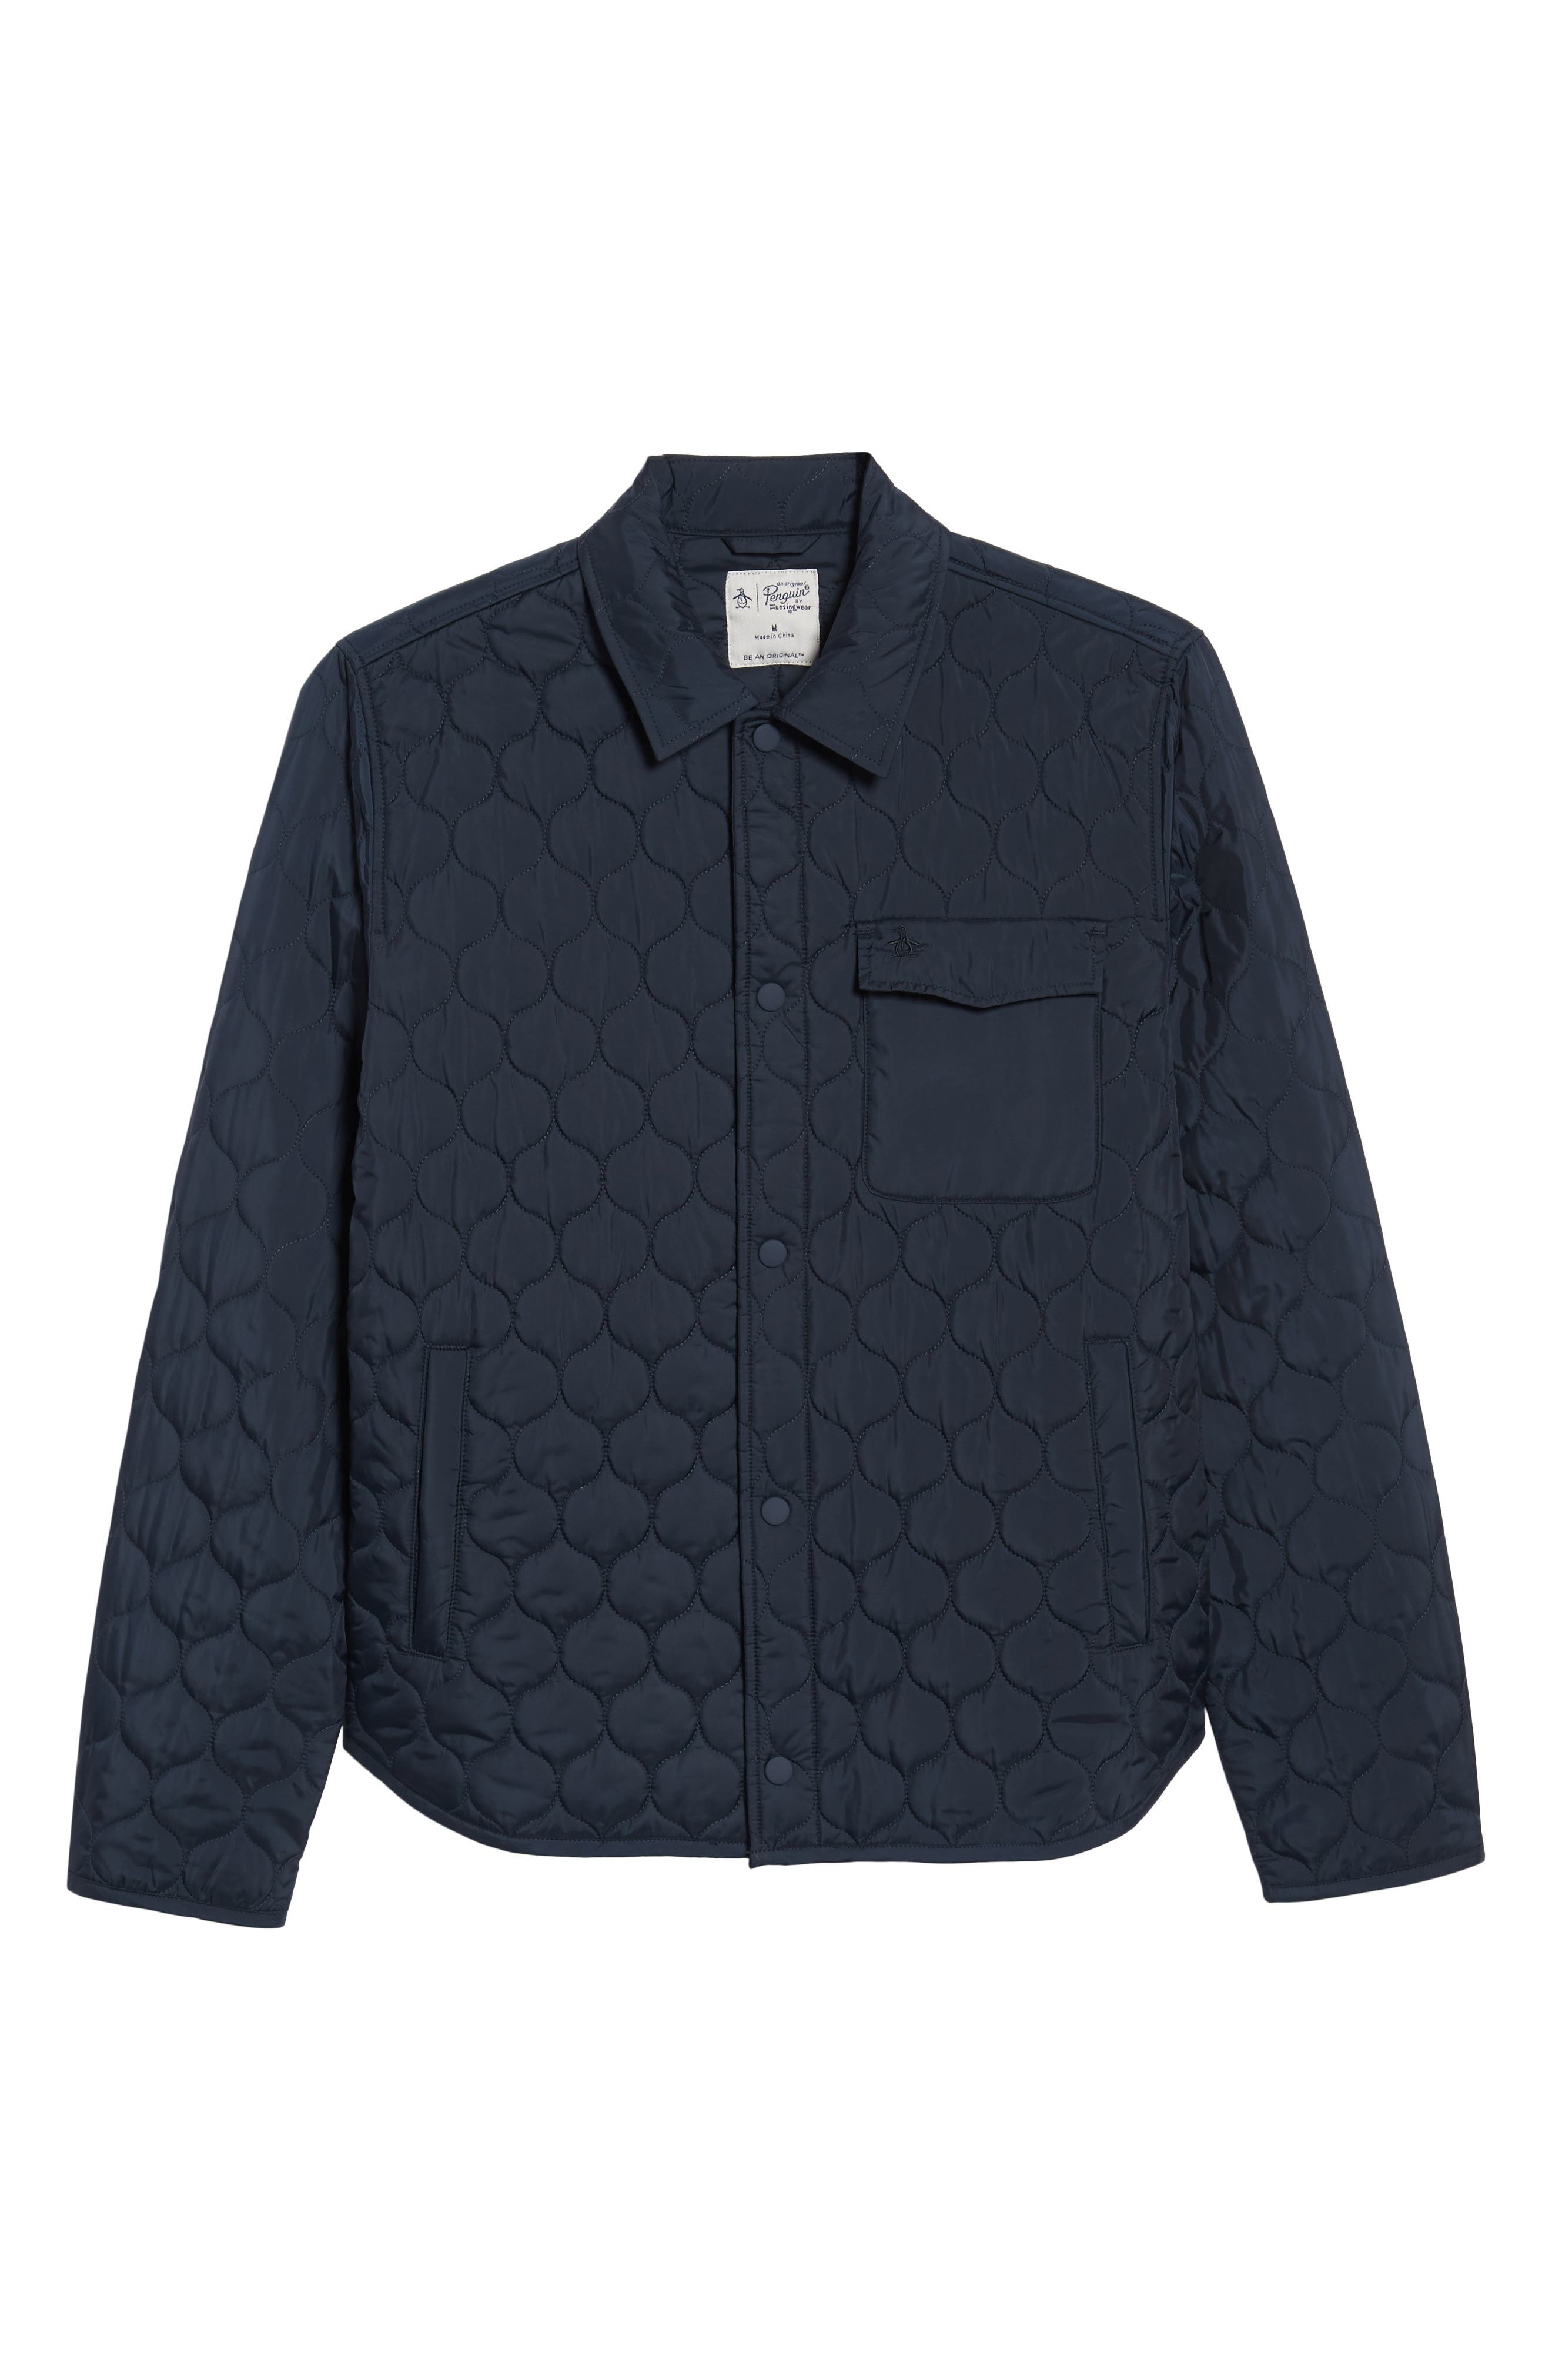 ORIGINAL PENGUIN,                             Lightweight Onion Quilted Jacket,                             Alternate thumbnail 5, color,                             413